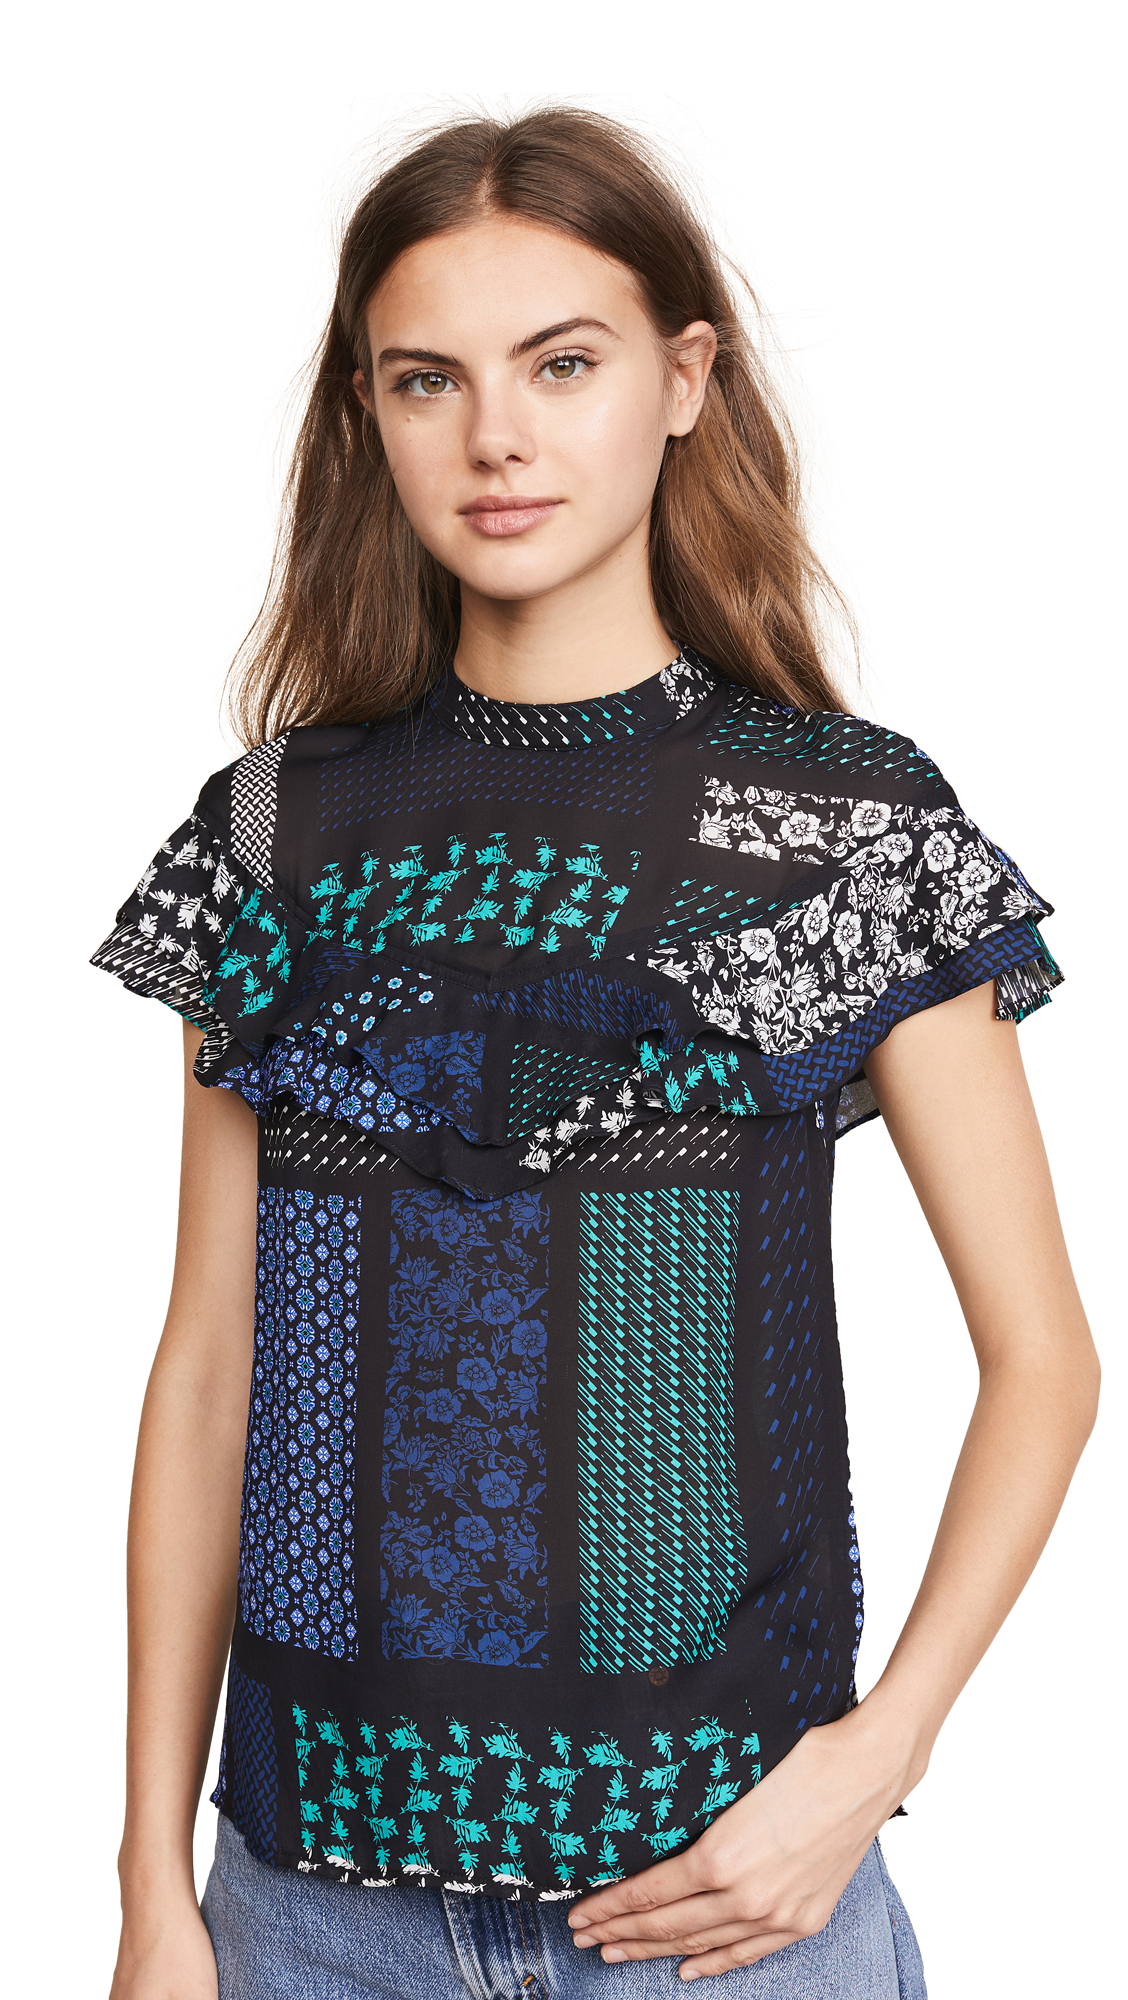 Derek Lam 10 Crosby Ruffle Blouse In Black Multi